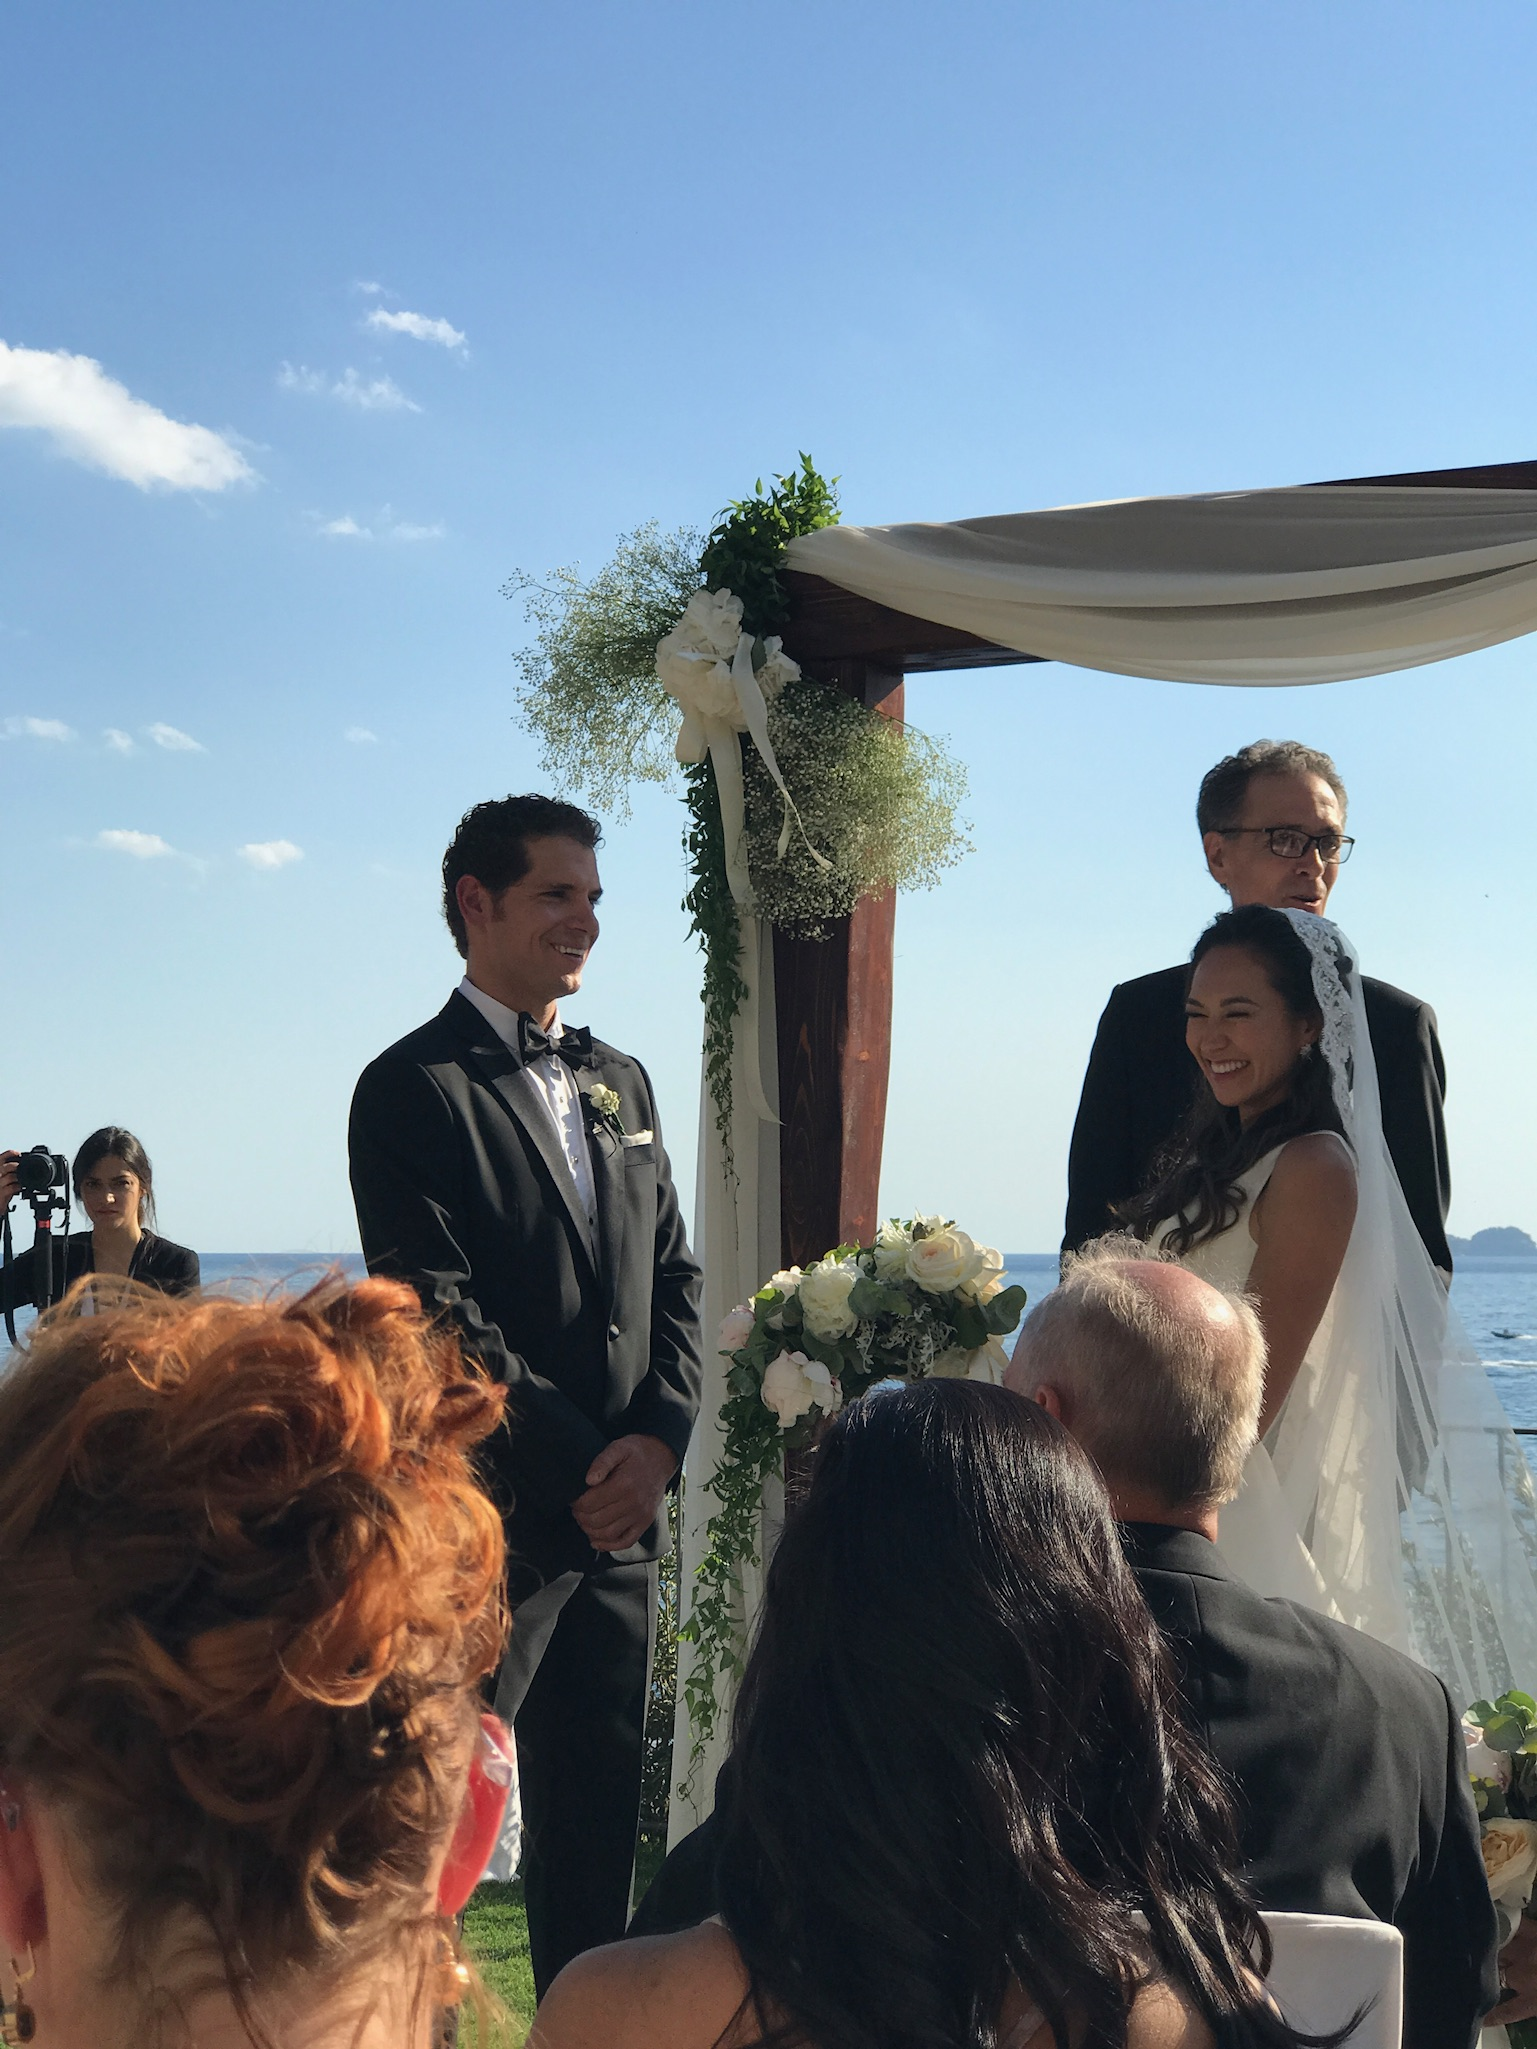 http://www.weddingamalfi.com/wp-content/uploads/Nathalie-and-Benjamin-wedding-in-Positano-3.jpg